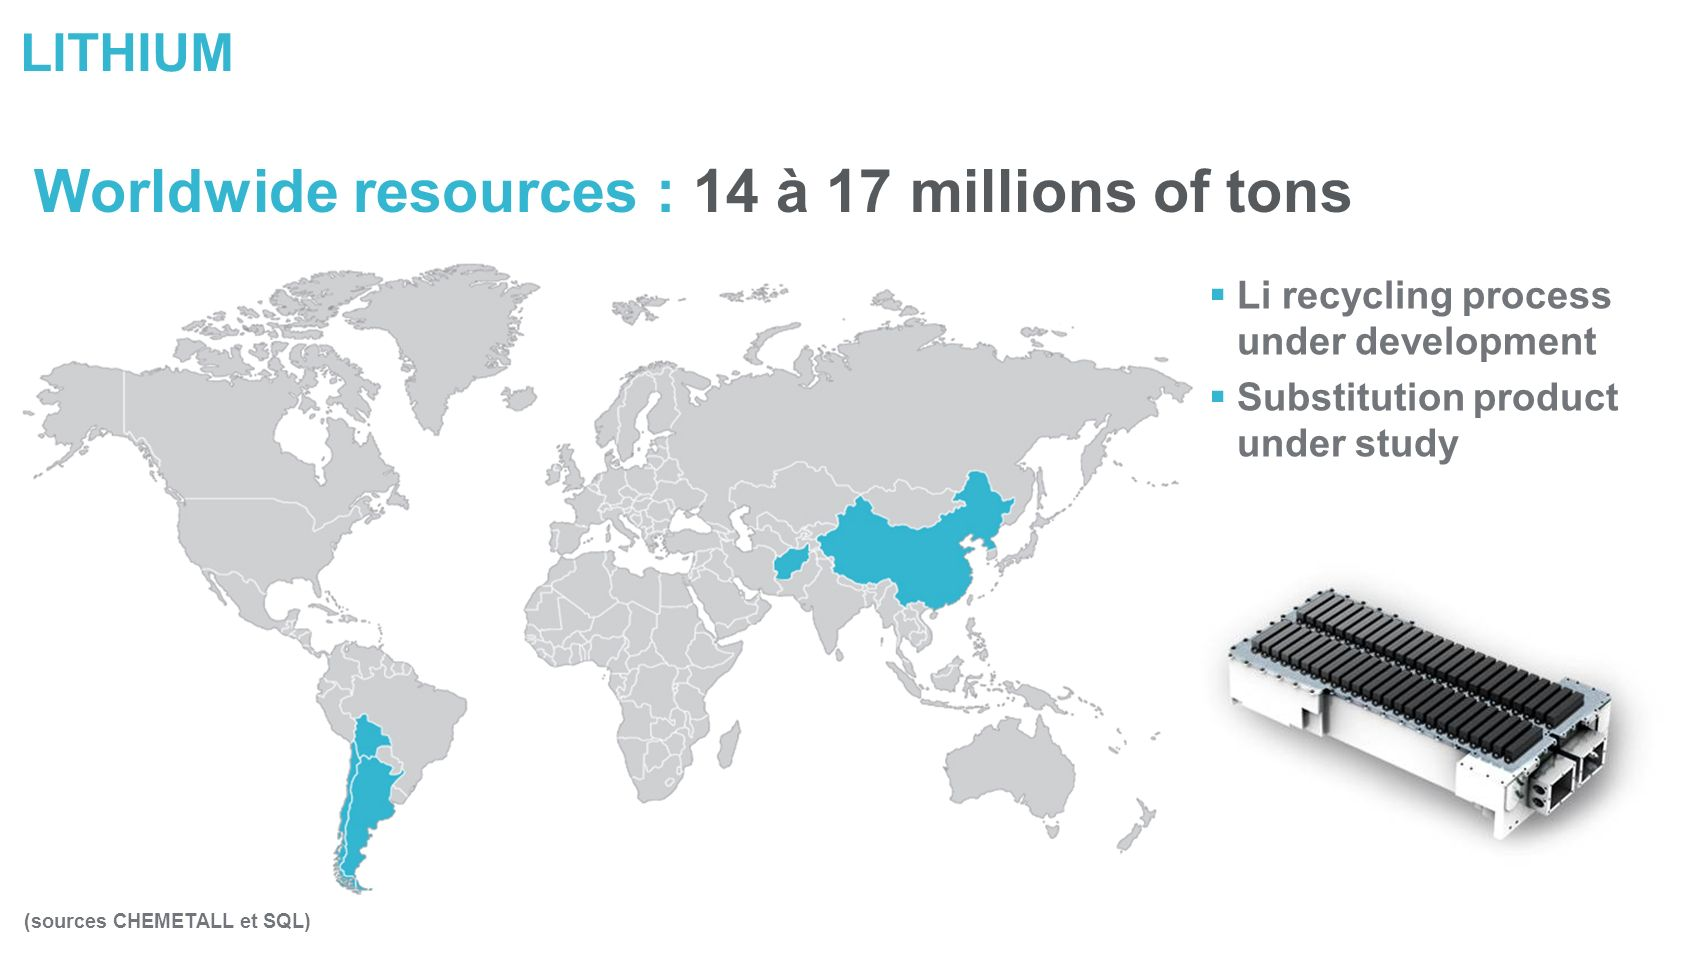 LITHIUM Worldwide resources : 14 à 17 millions of tons (sources CHEMETALL et SQL) Li recycling process under development Substitution product under study